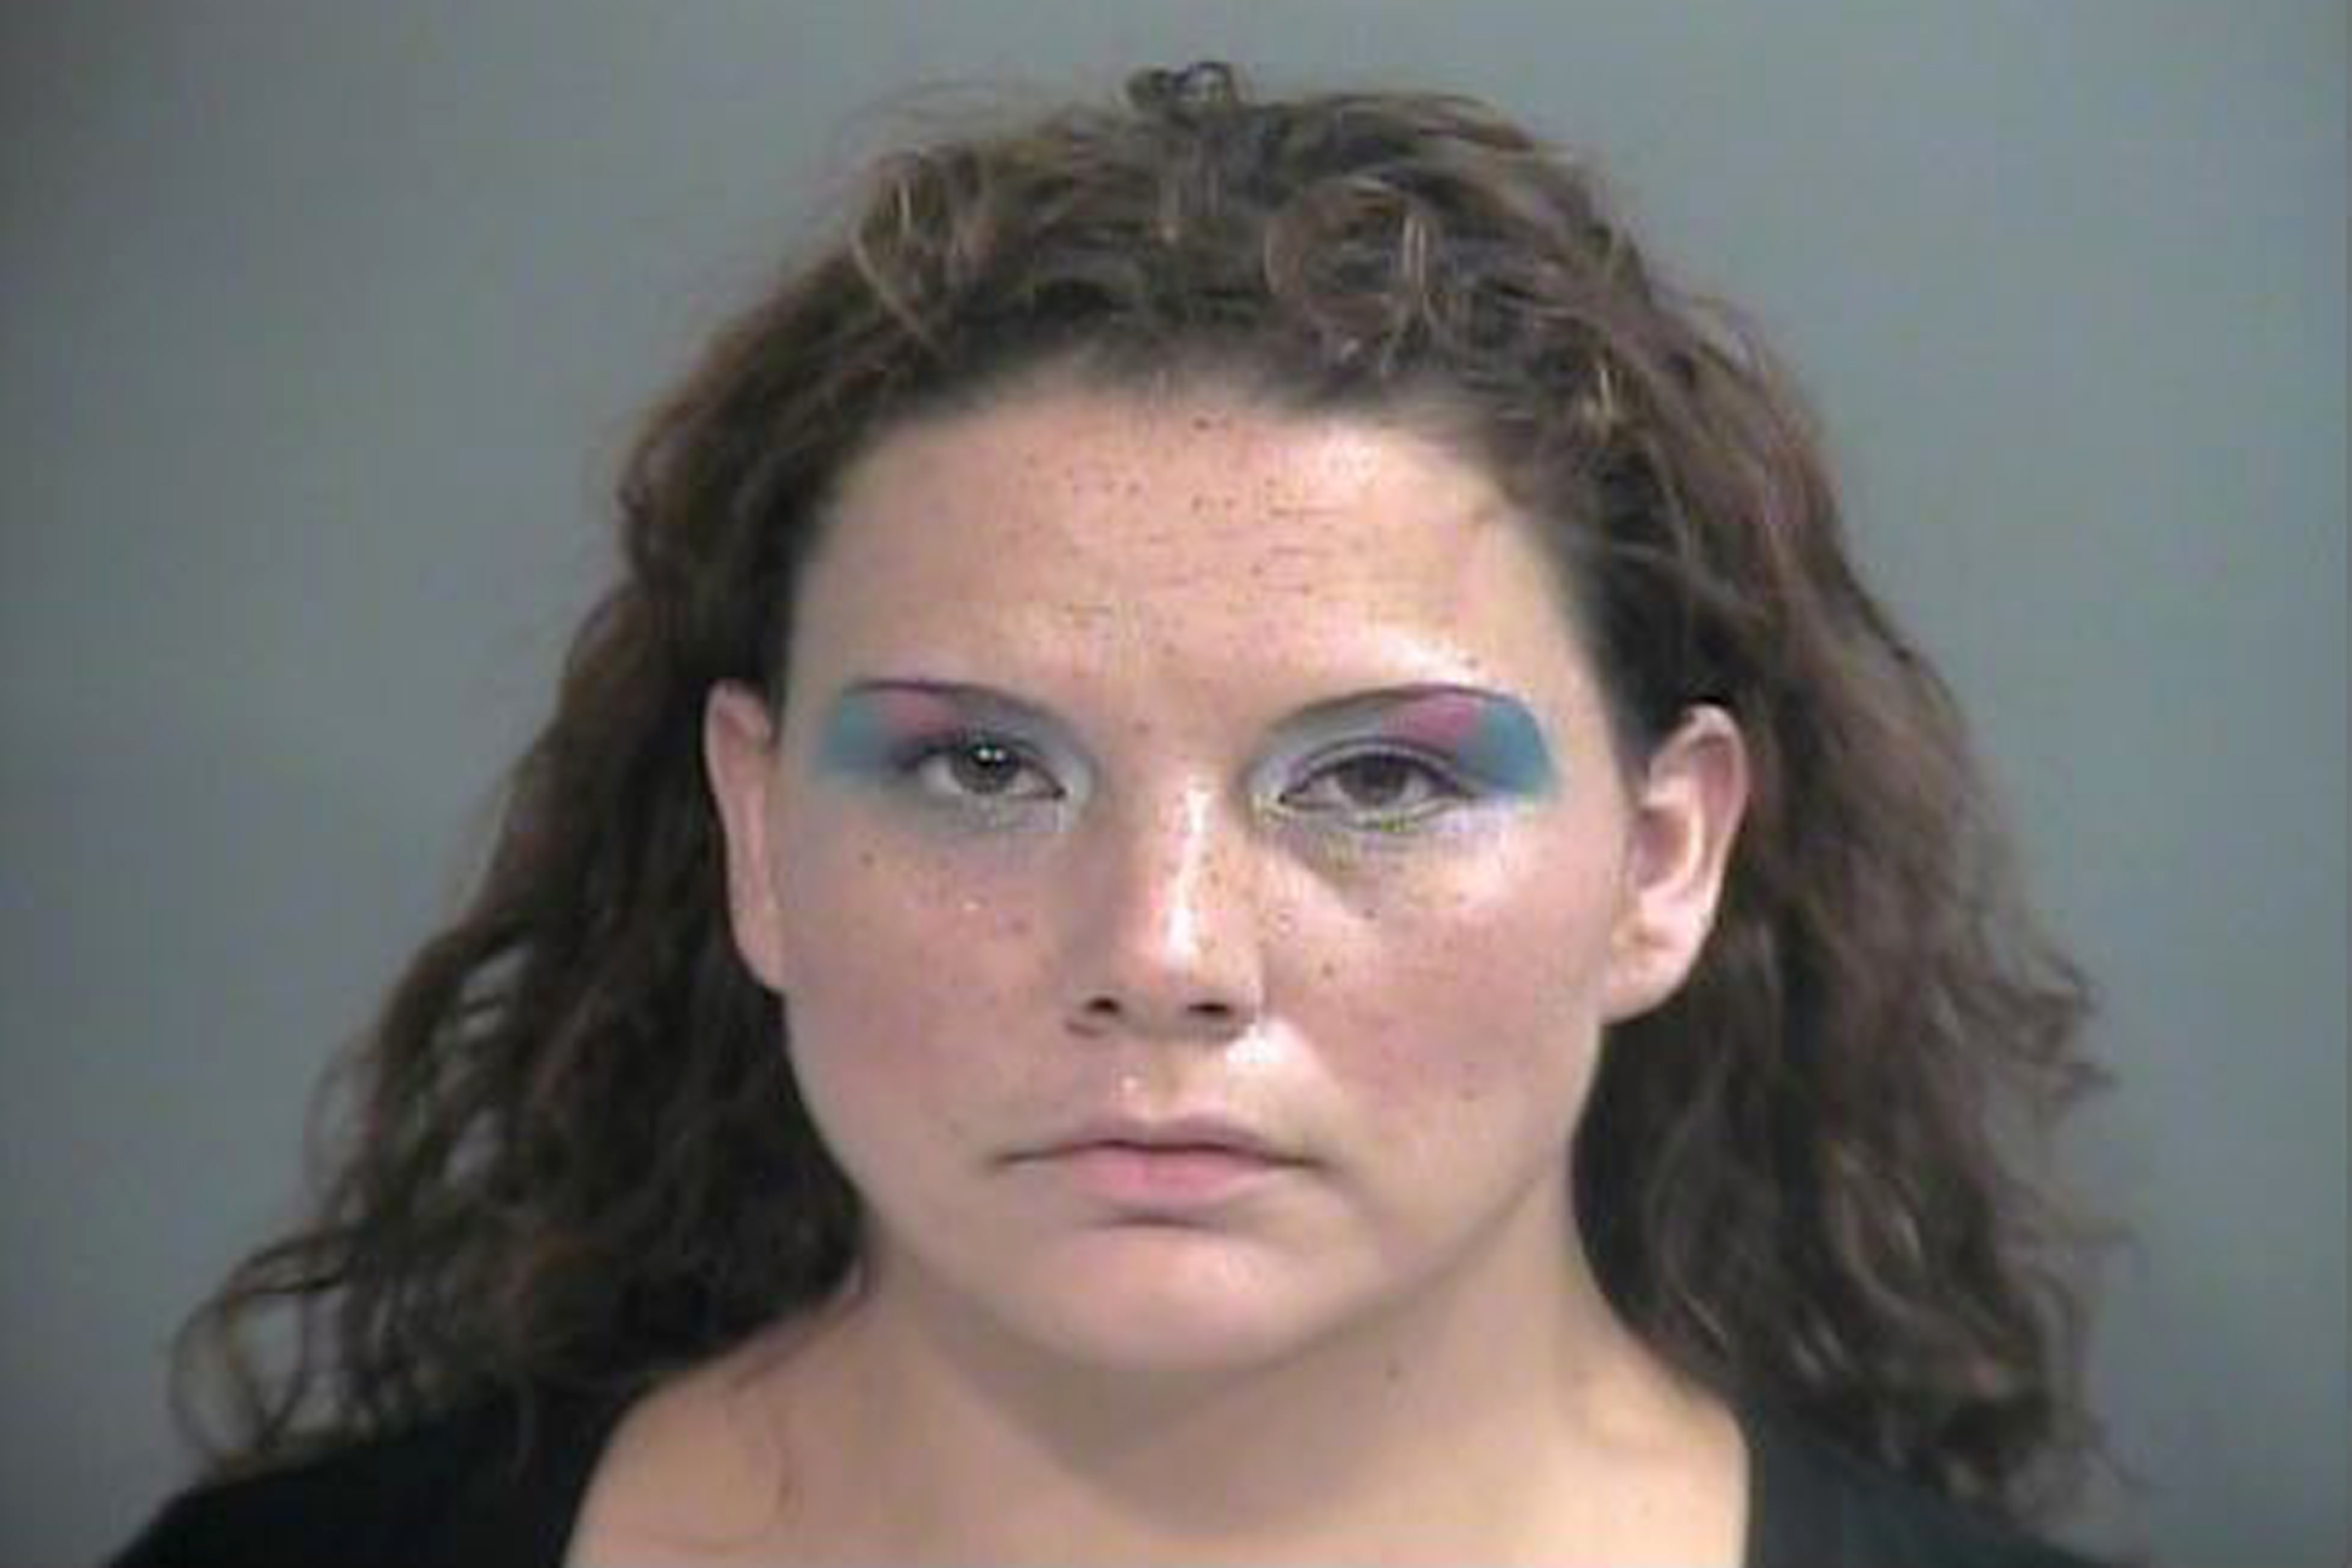 This Wednesday, Sept. 1, 2014 police booking photo provided by Washington County Sheriff's Office shows shoplifting suspect Brandy Allen in Fayetteville, Ark.